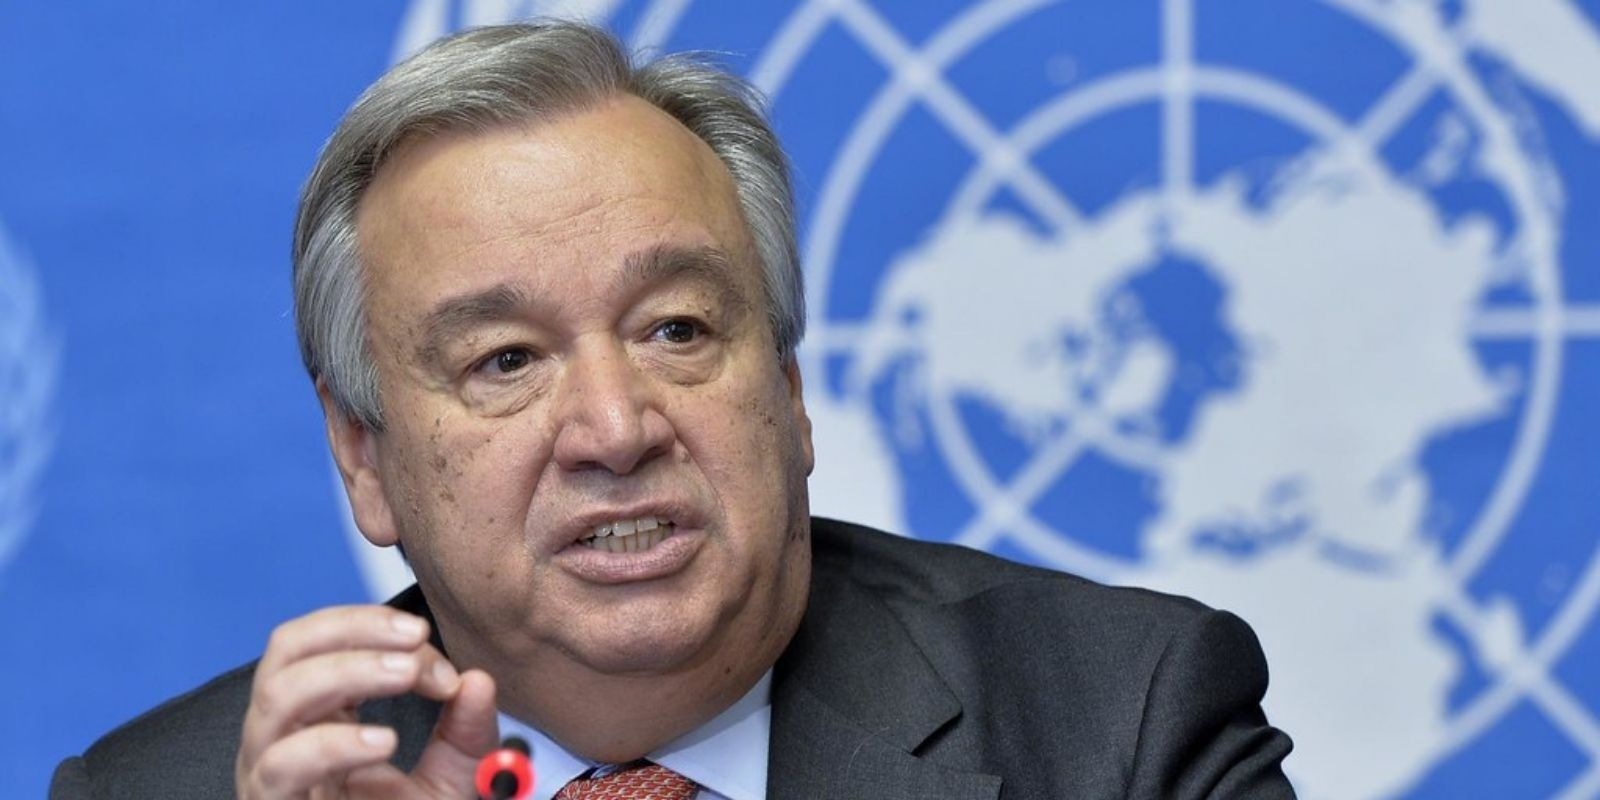 UN tells world leaders 'you must do more' about global warming